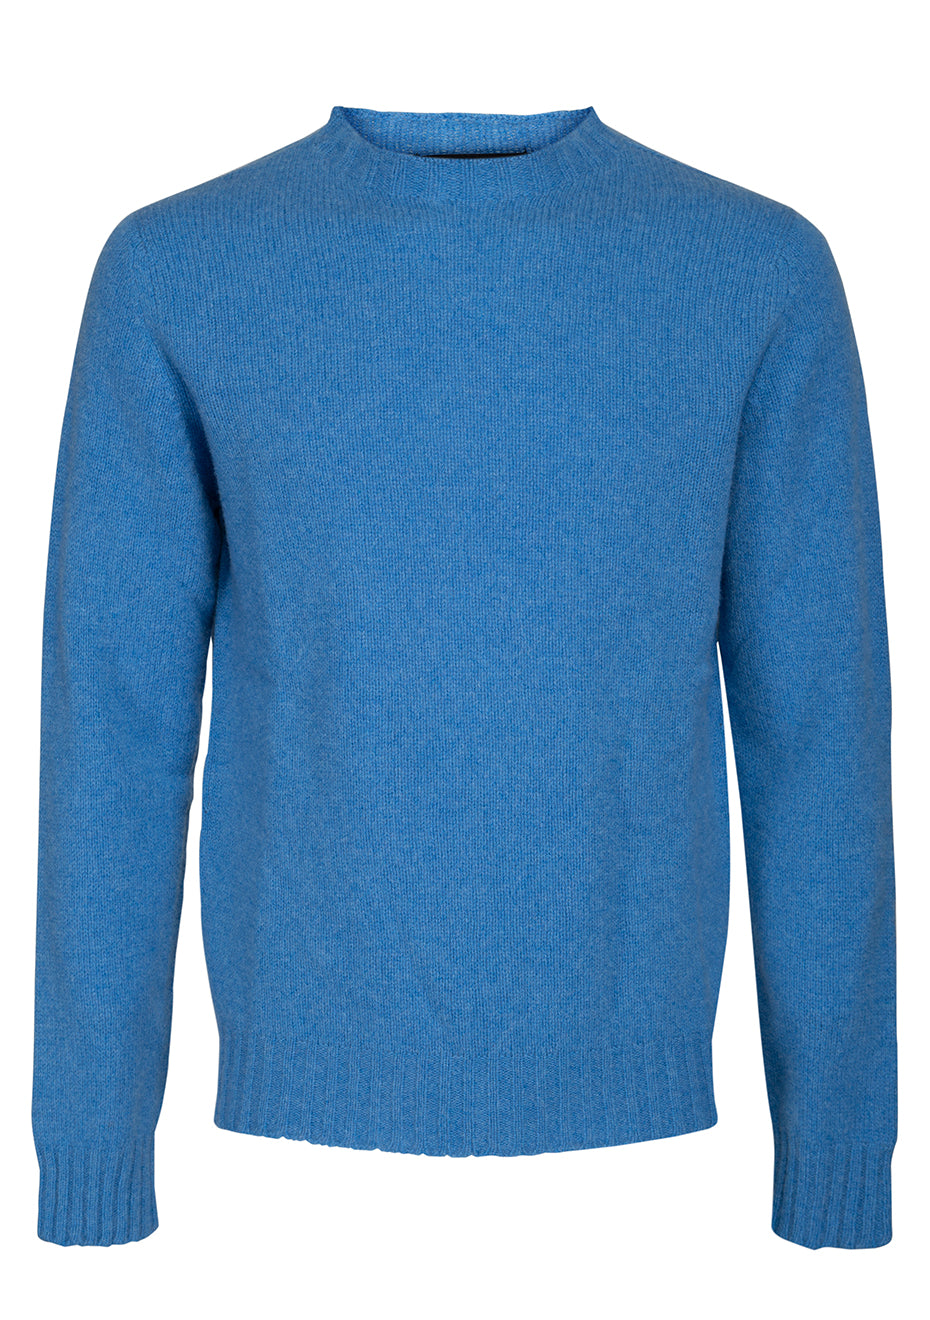 Indus Blue Cashmere Sweater